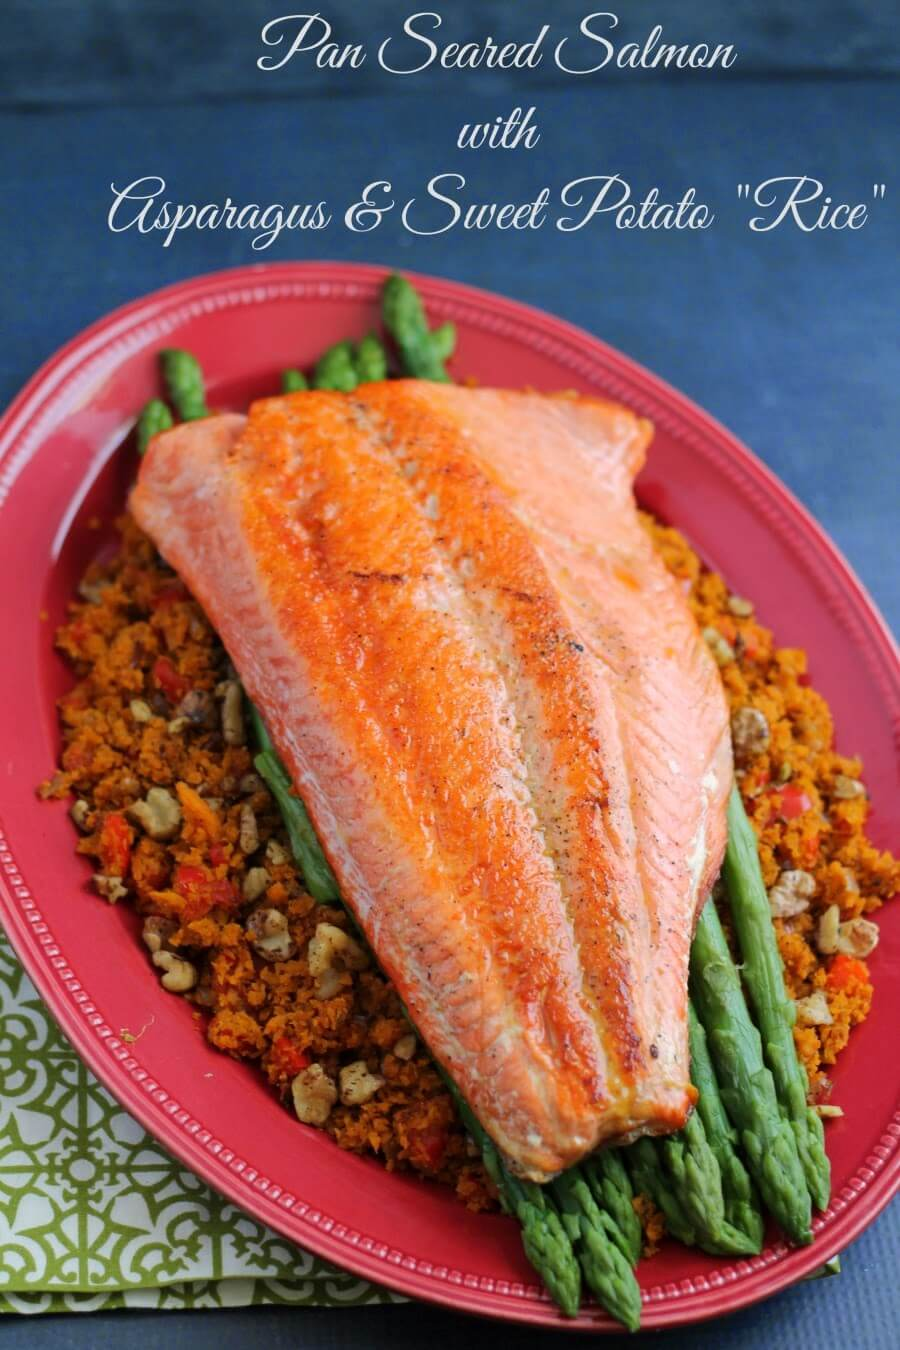 "Pan Seared Salmon with Asparagus & Sweet Potato ""Rice"" on a red plate."